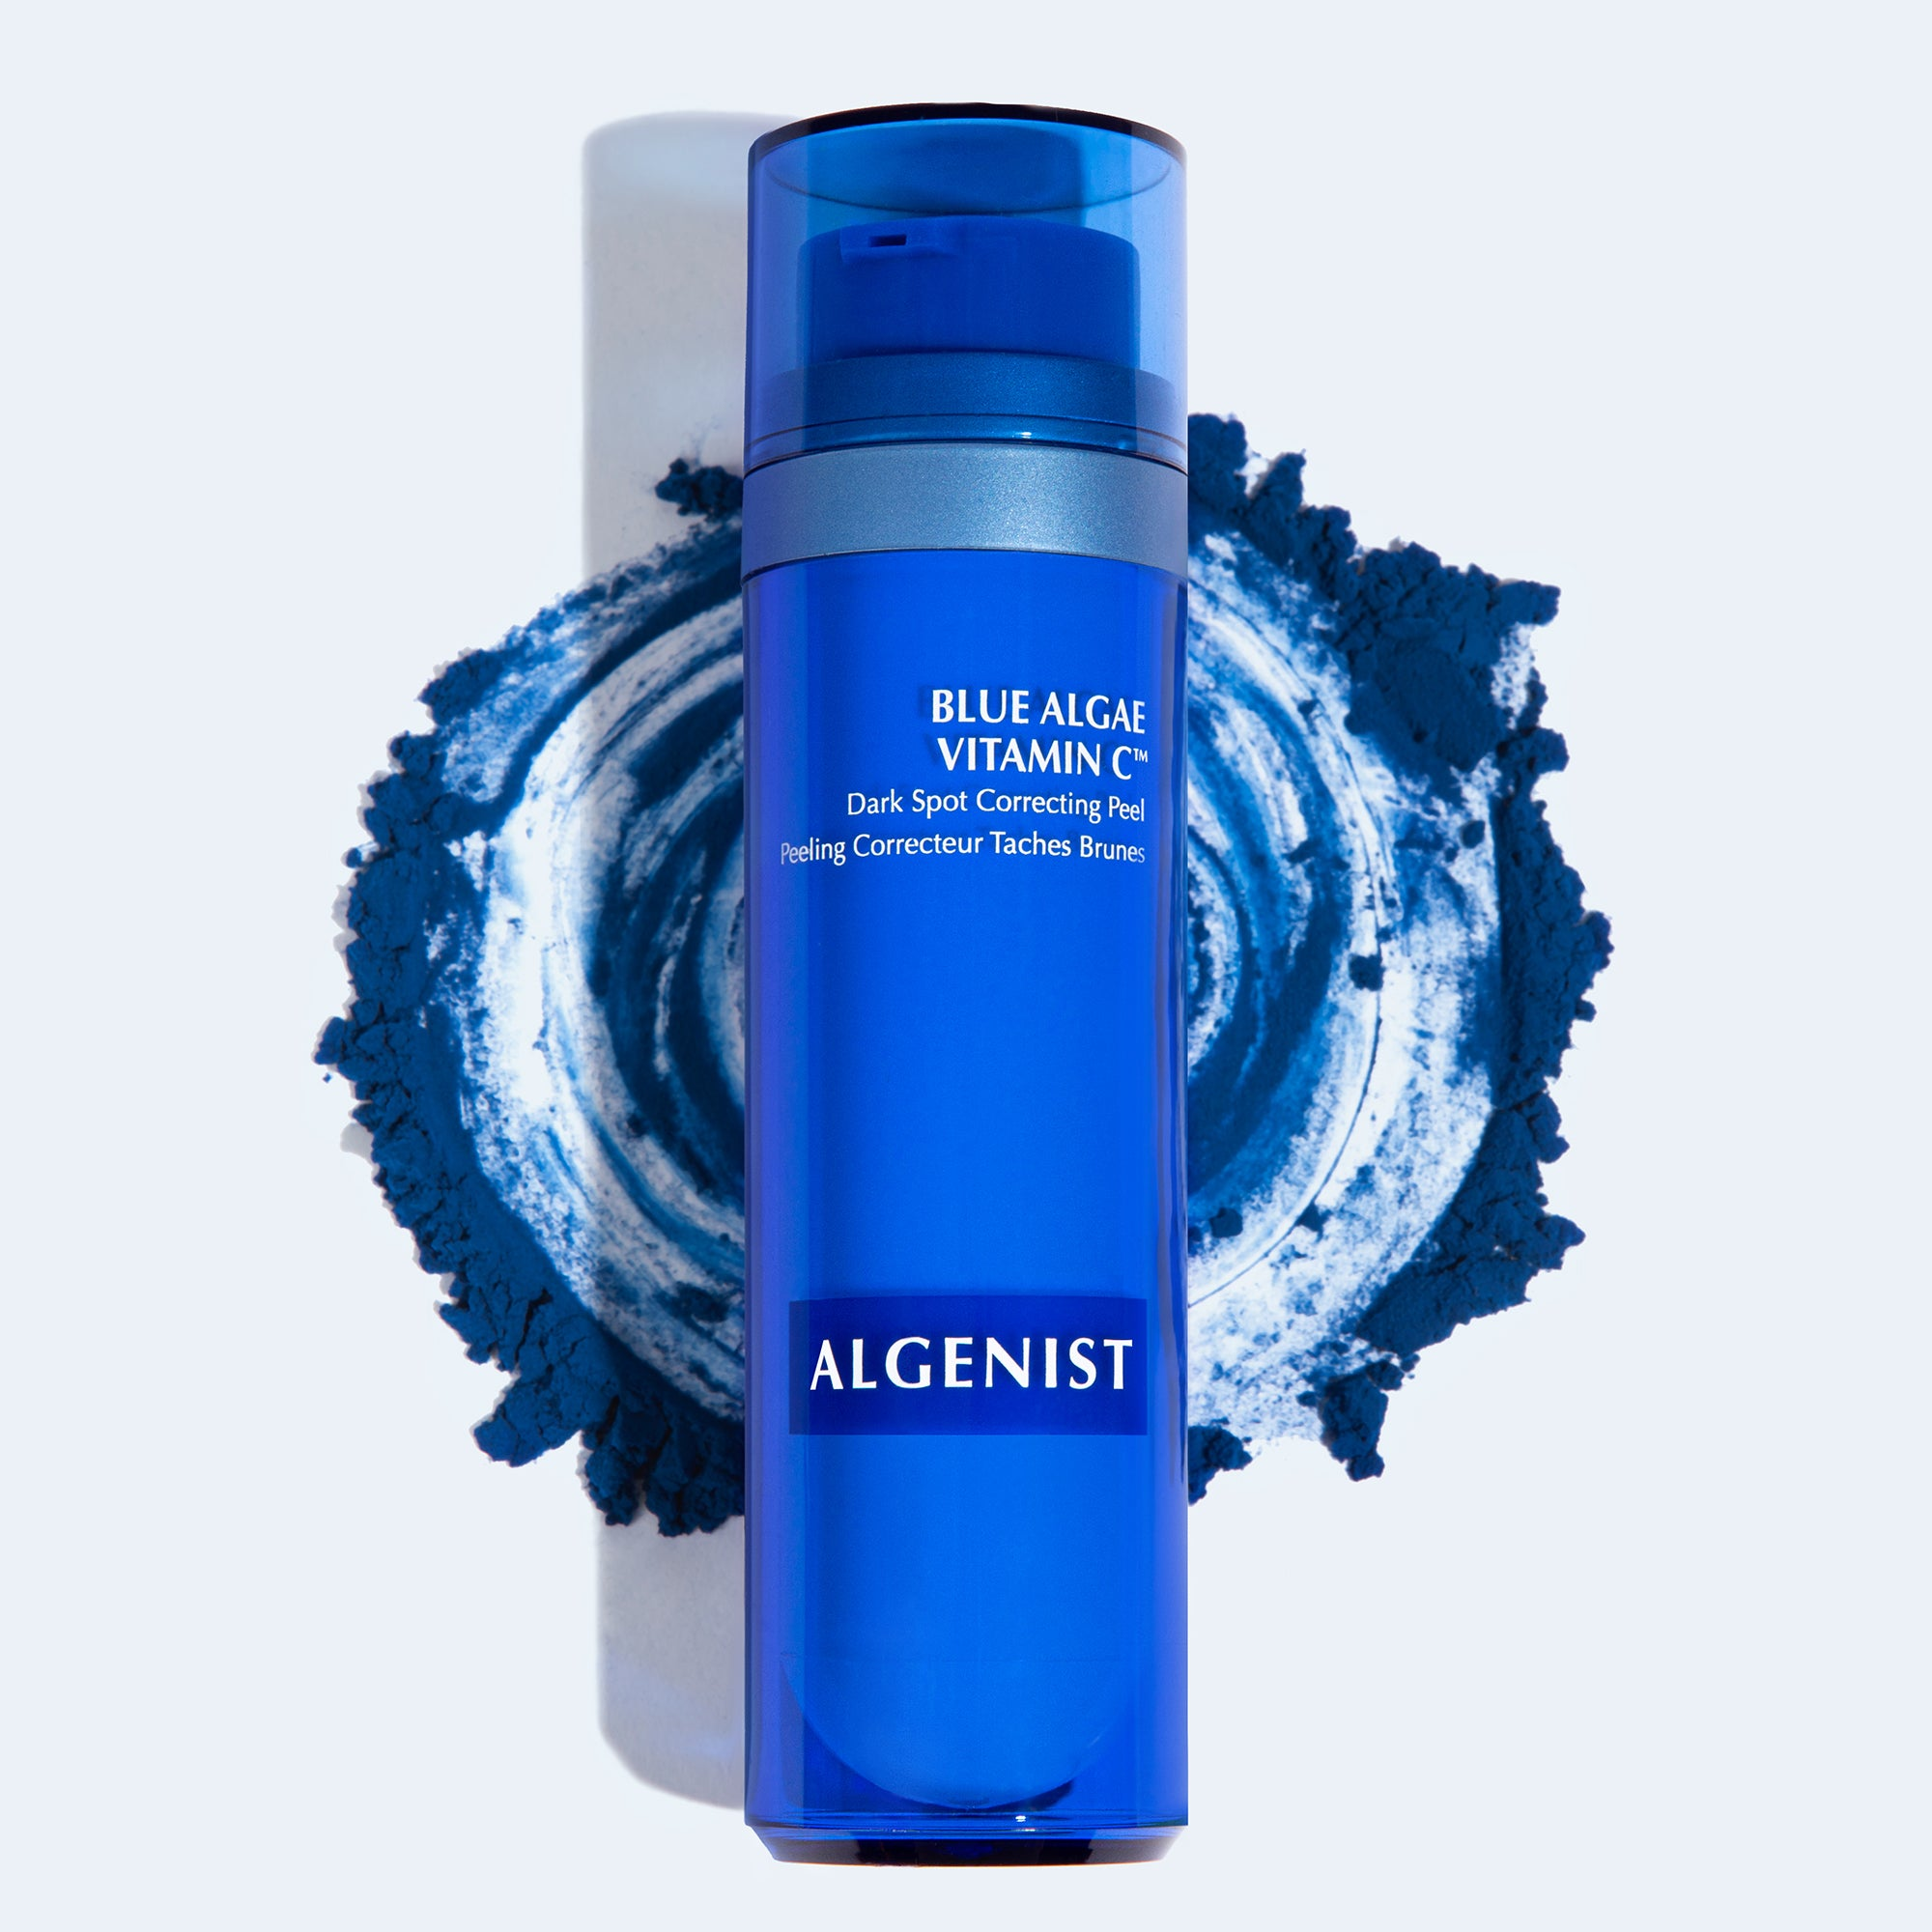 BLUE ALGAE VITAMIN C Dark Spot Correcting Peel